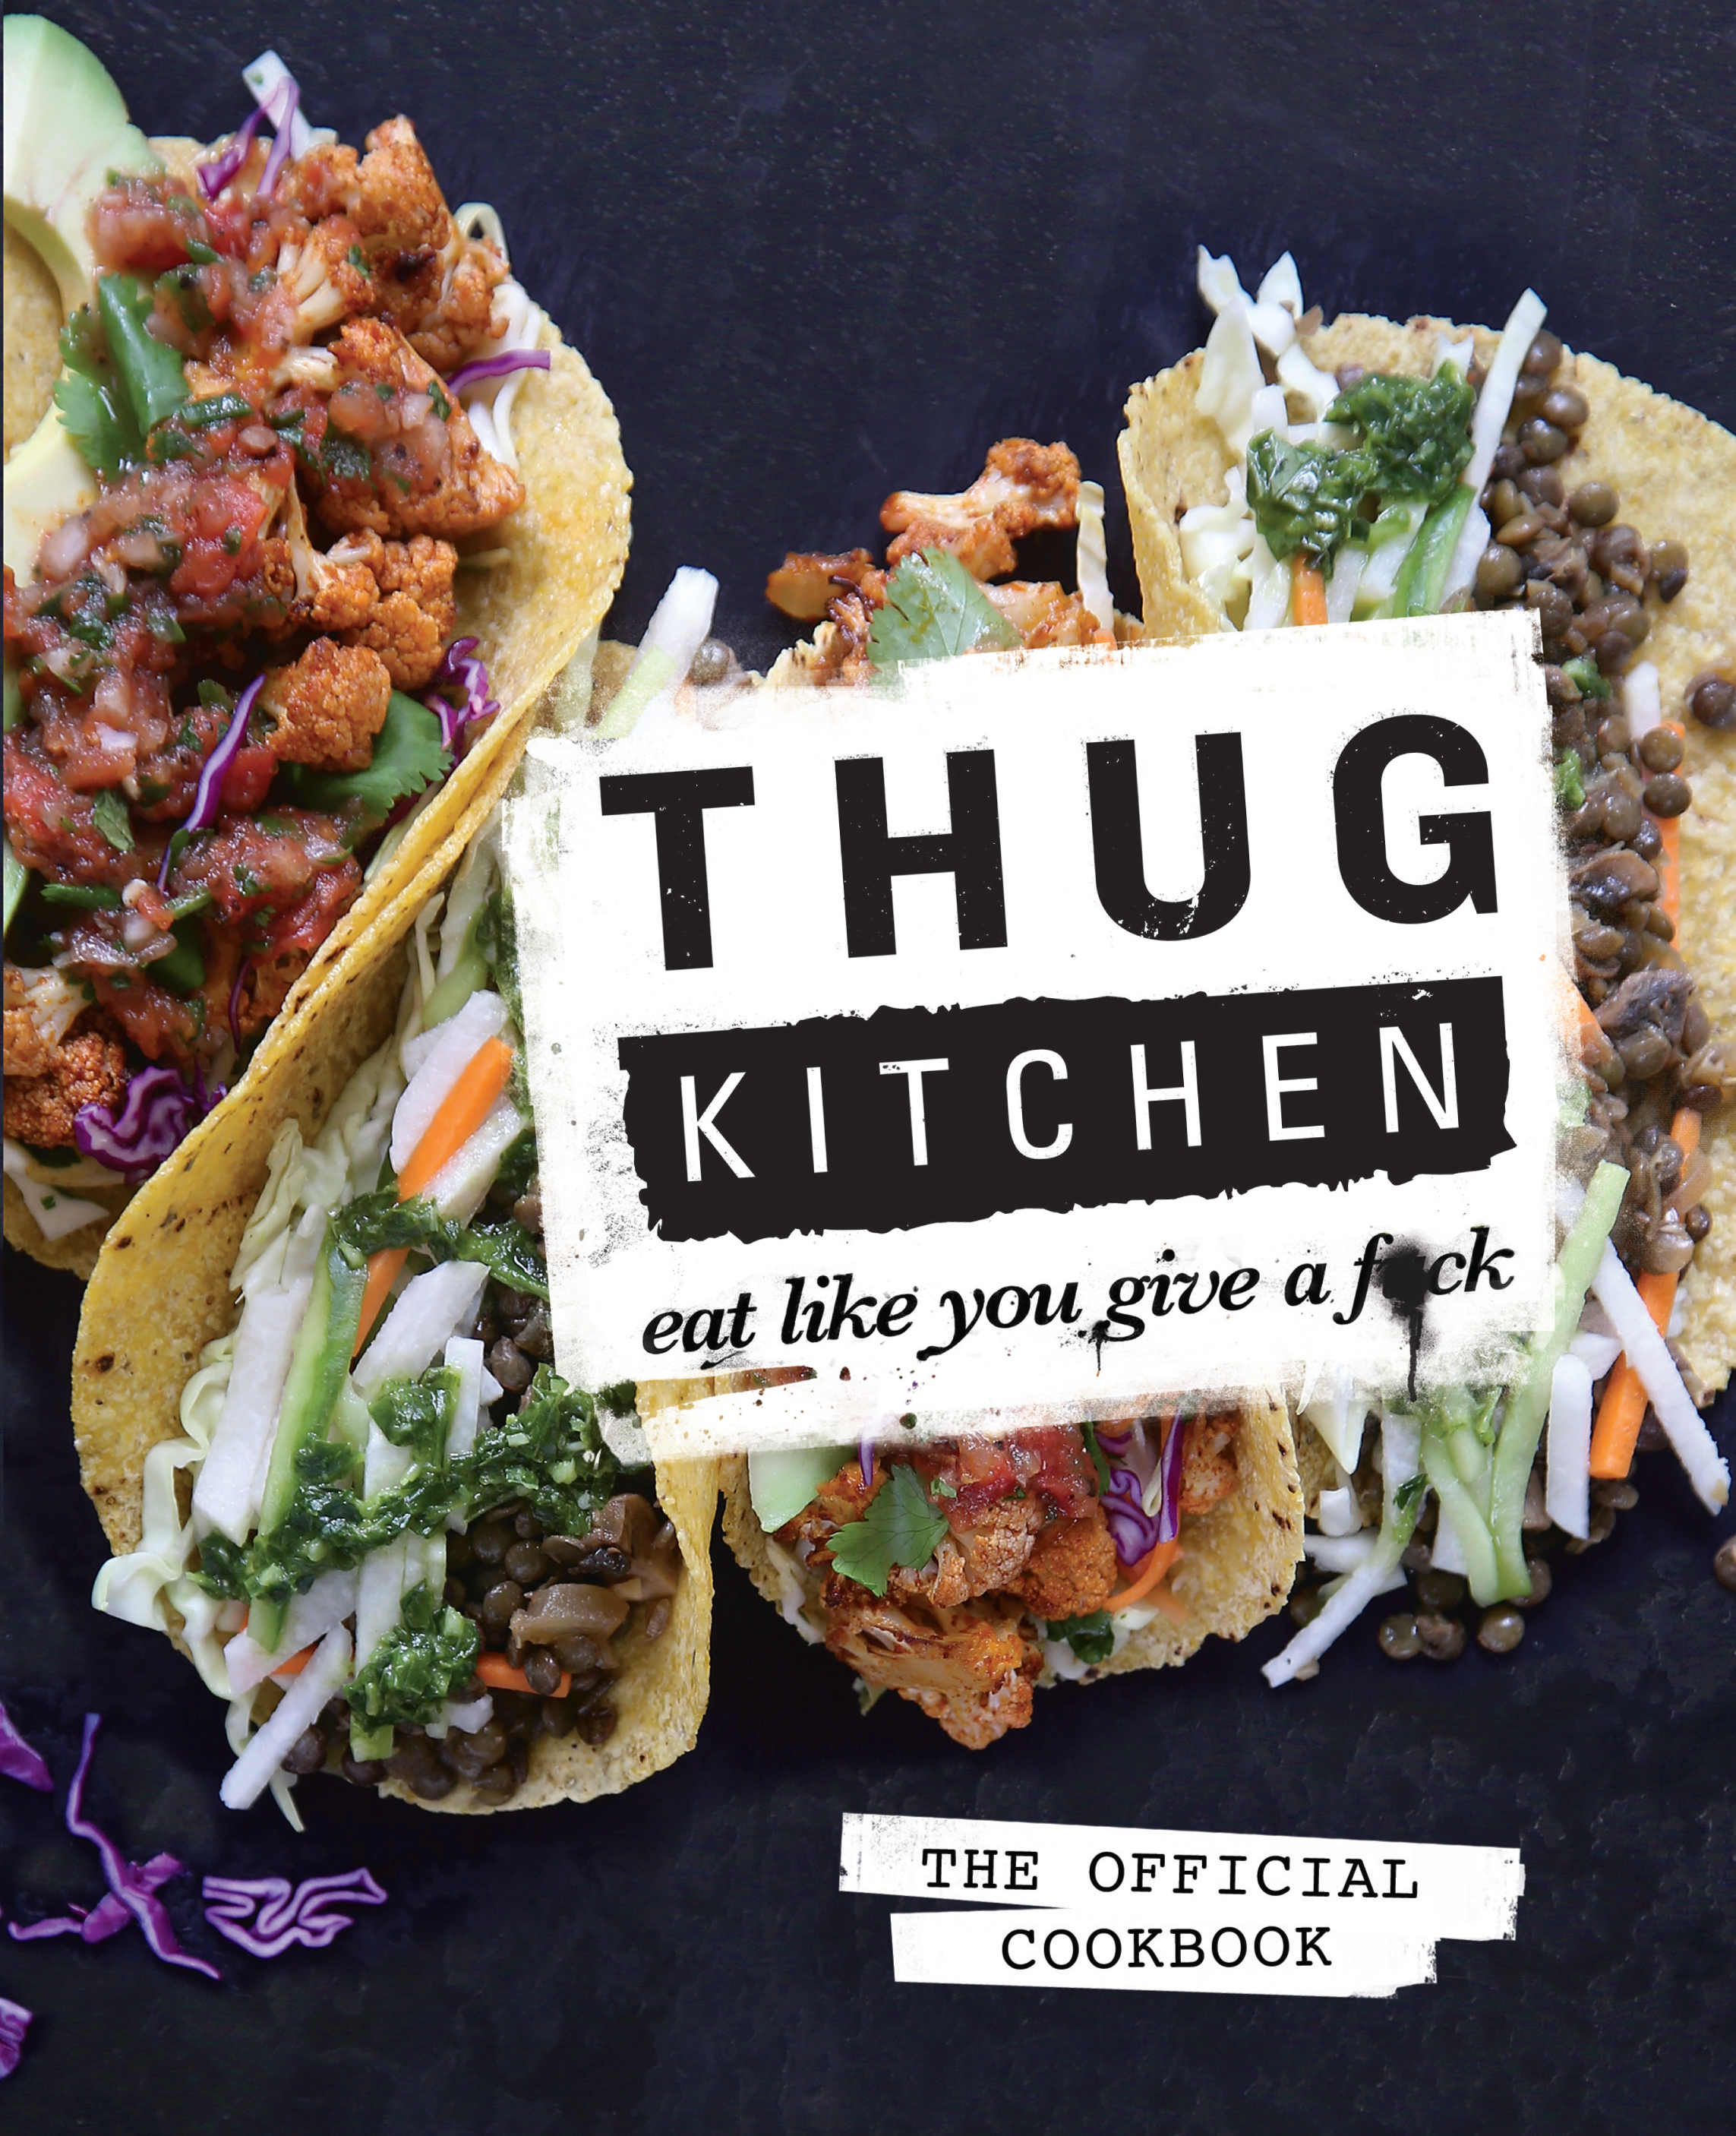 Cookbook Launch: Thug Kitchen, with Matt Duckor